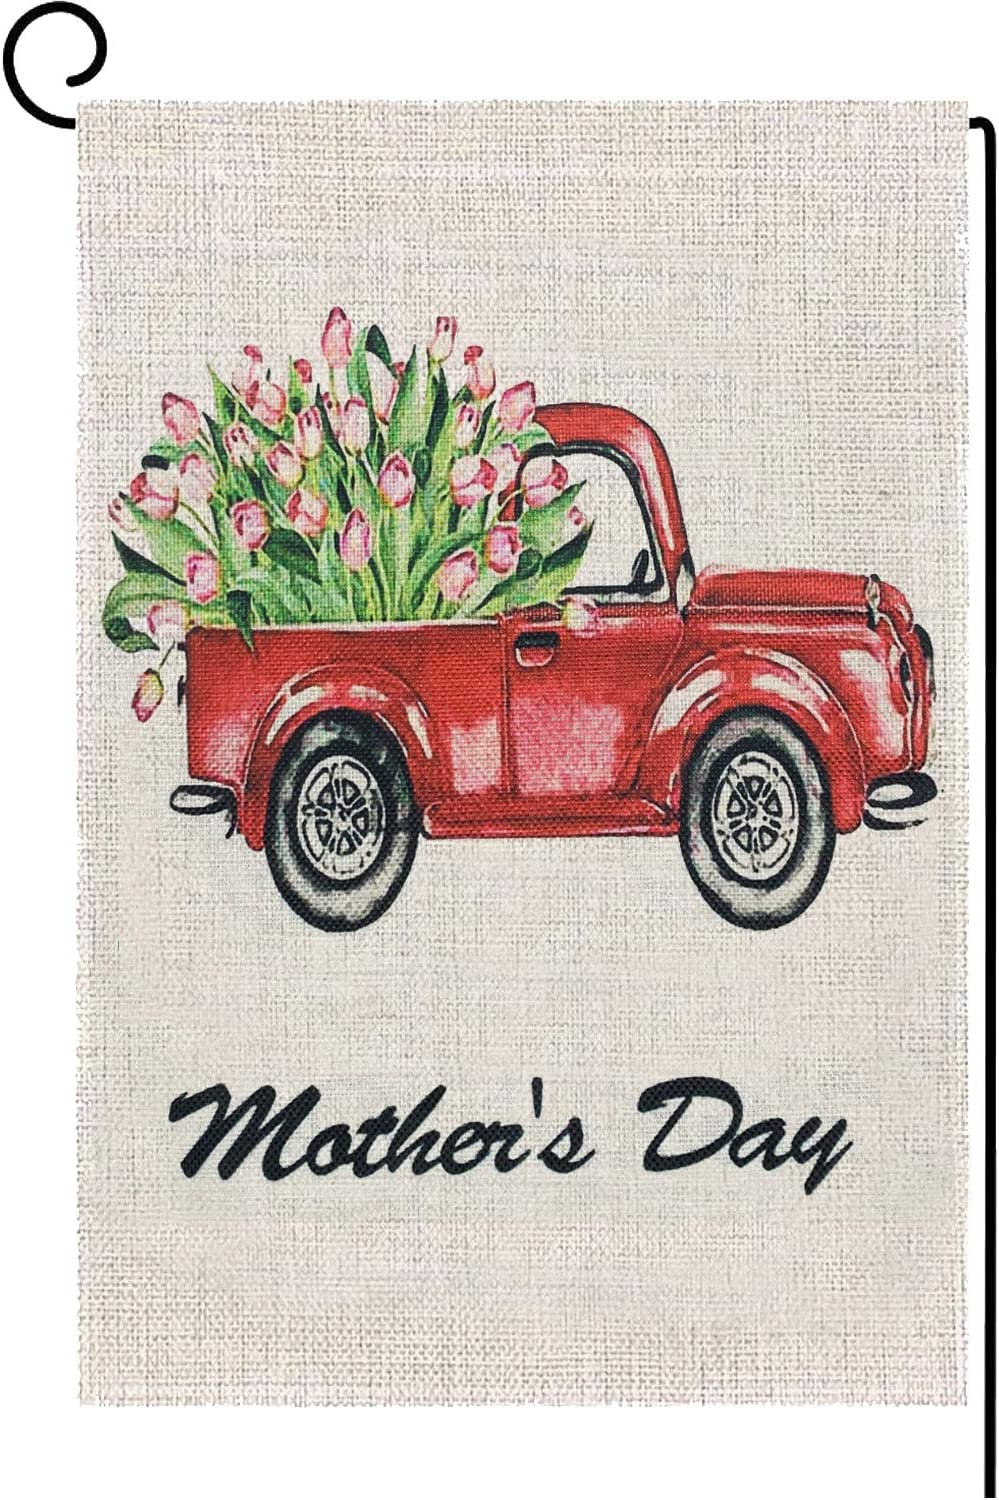 Iceyyyy Love Mother's Day Garden Flag - Double Sided Home Decorative Tulips Flower House Red Truck Yard Burlap Banner (Mother's Day)